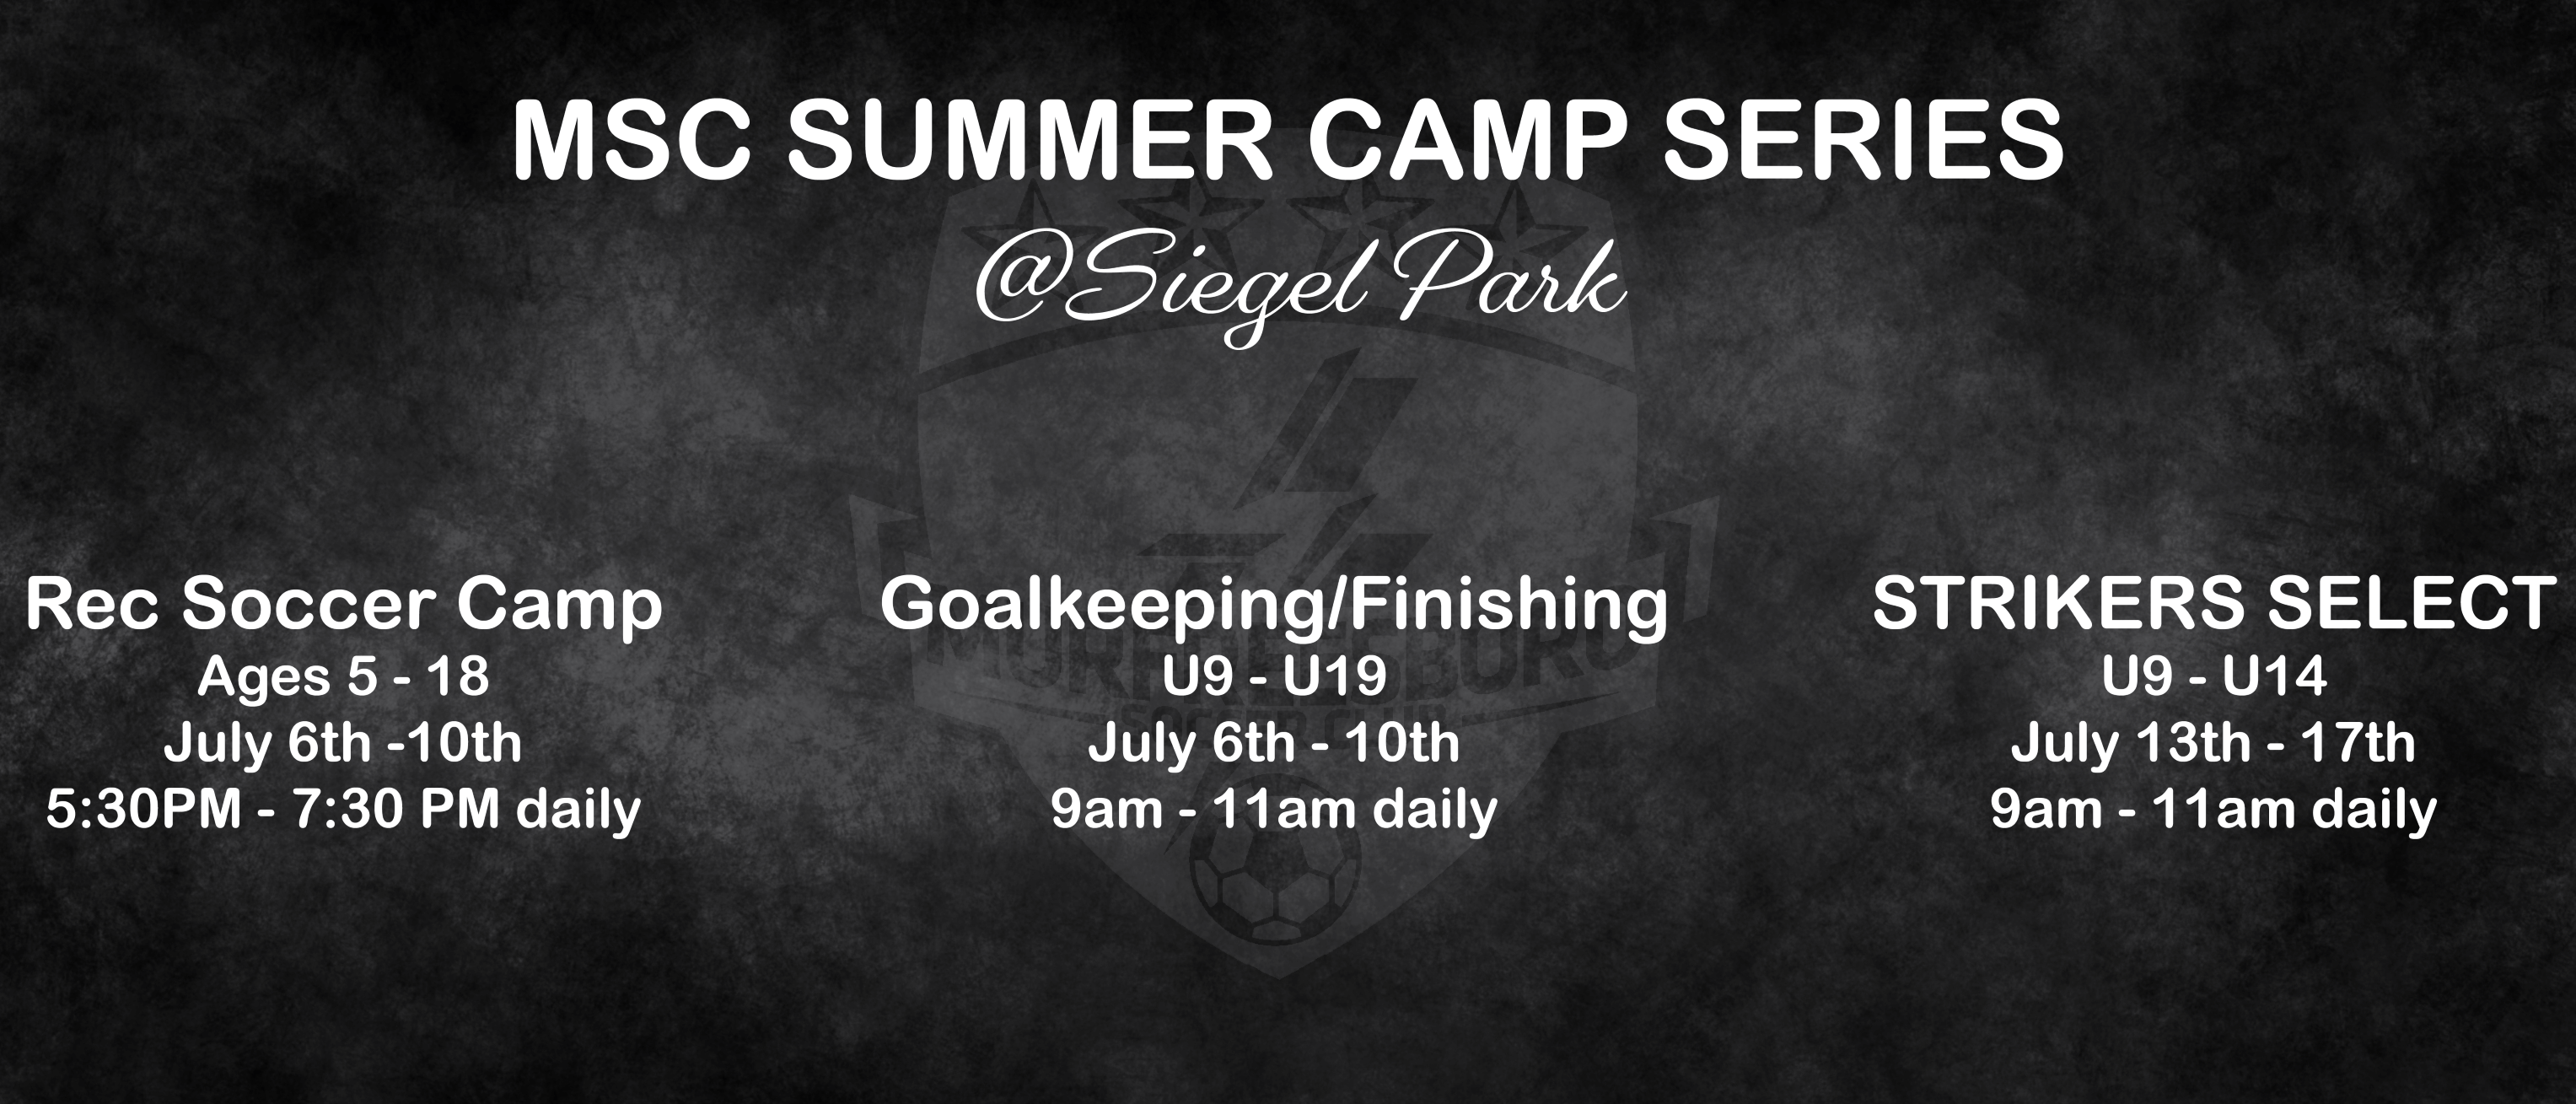 Summer Camp Dates Released!